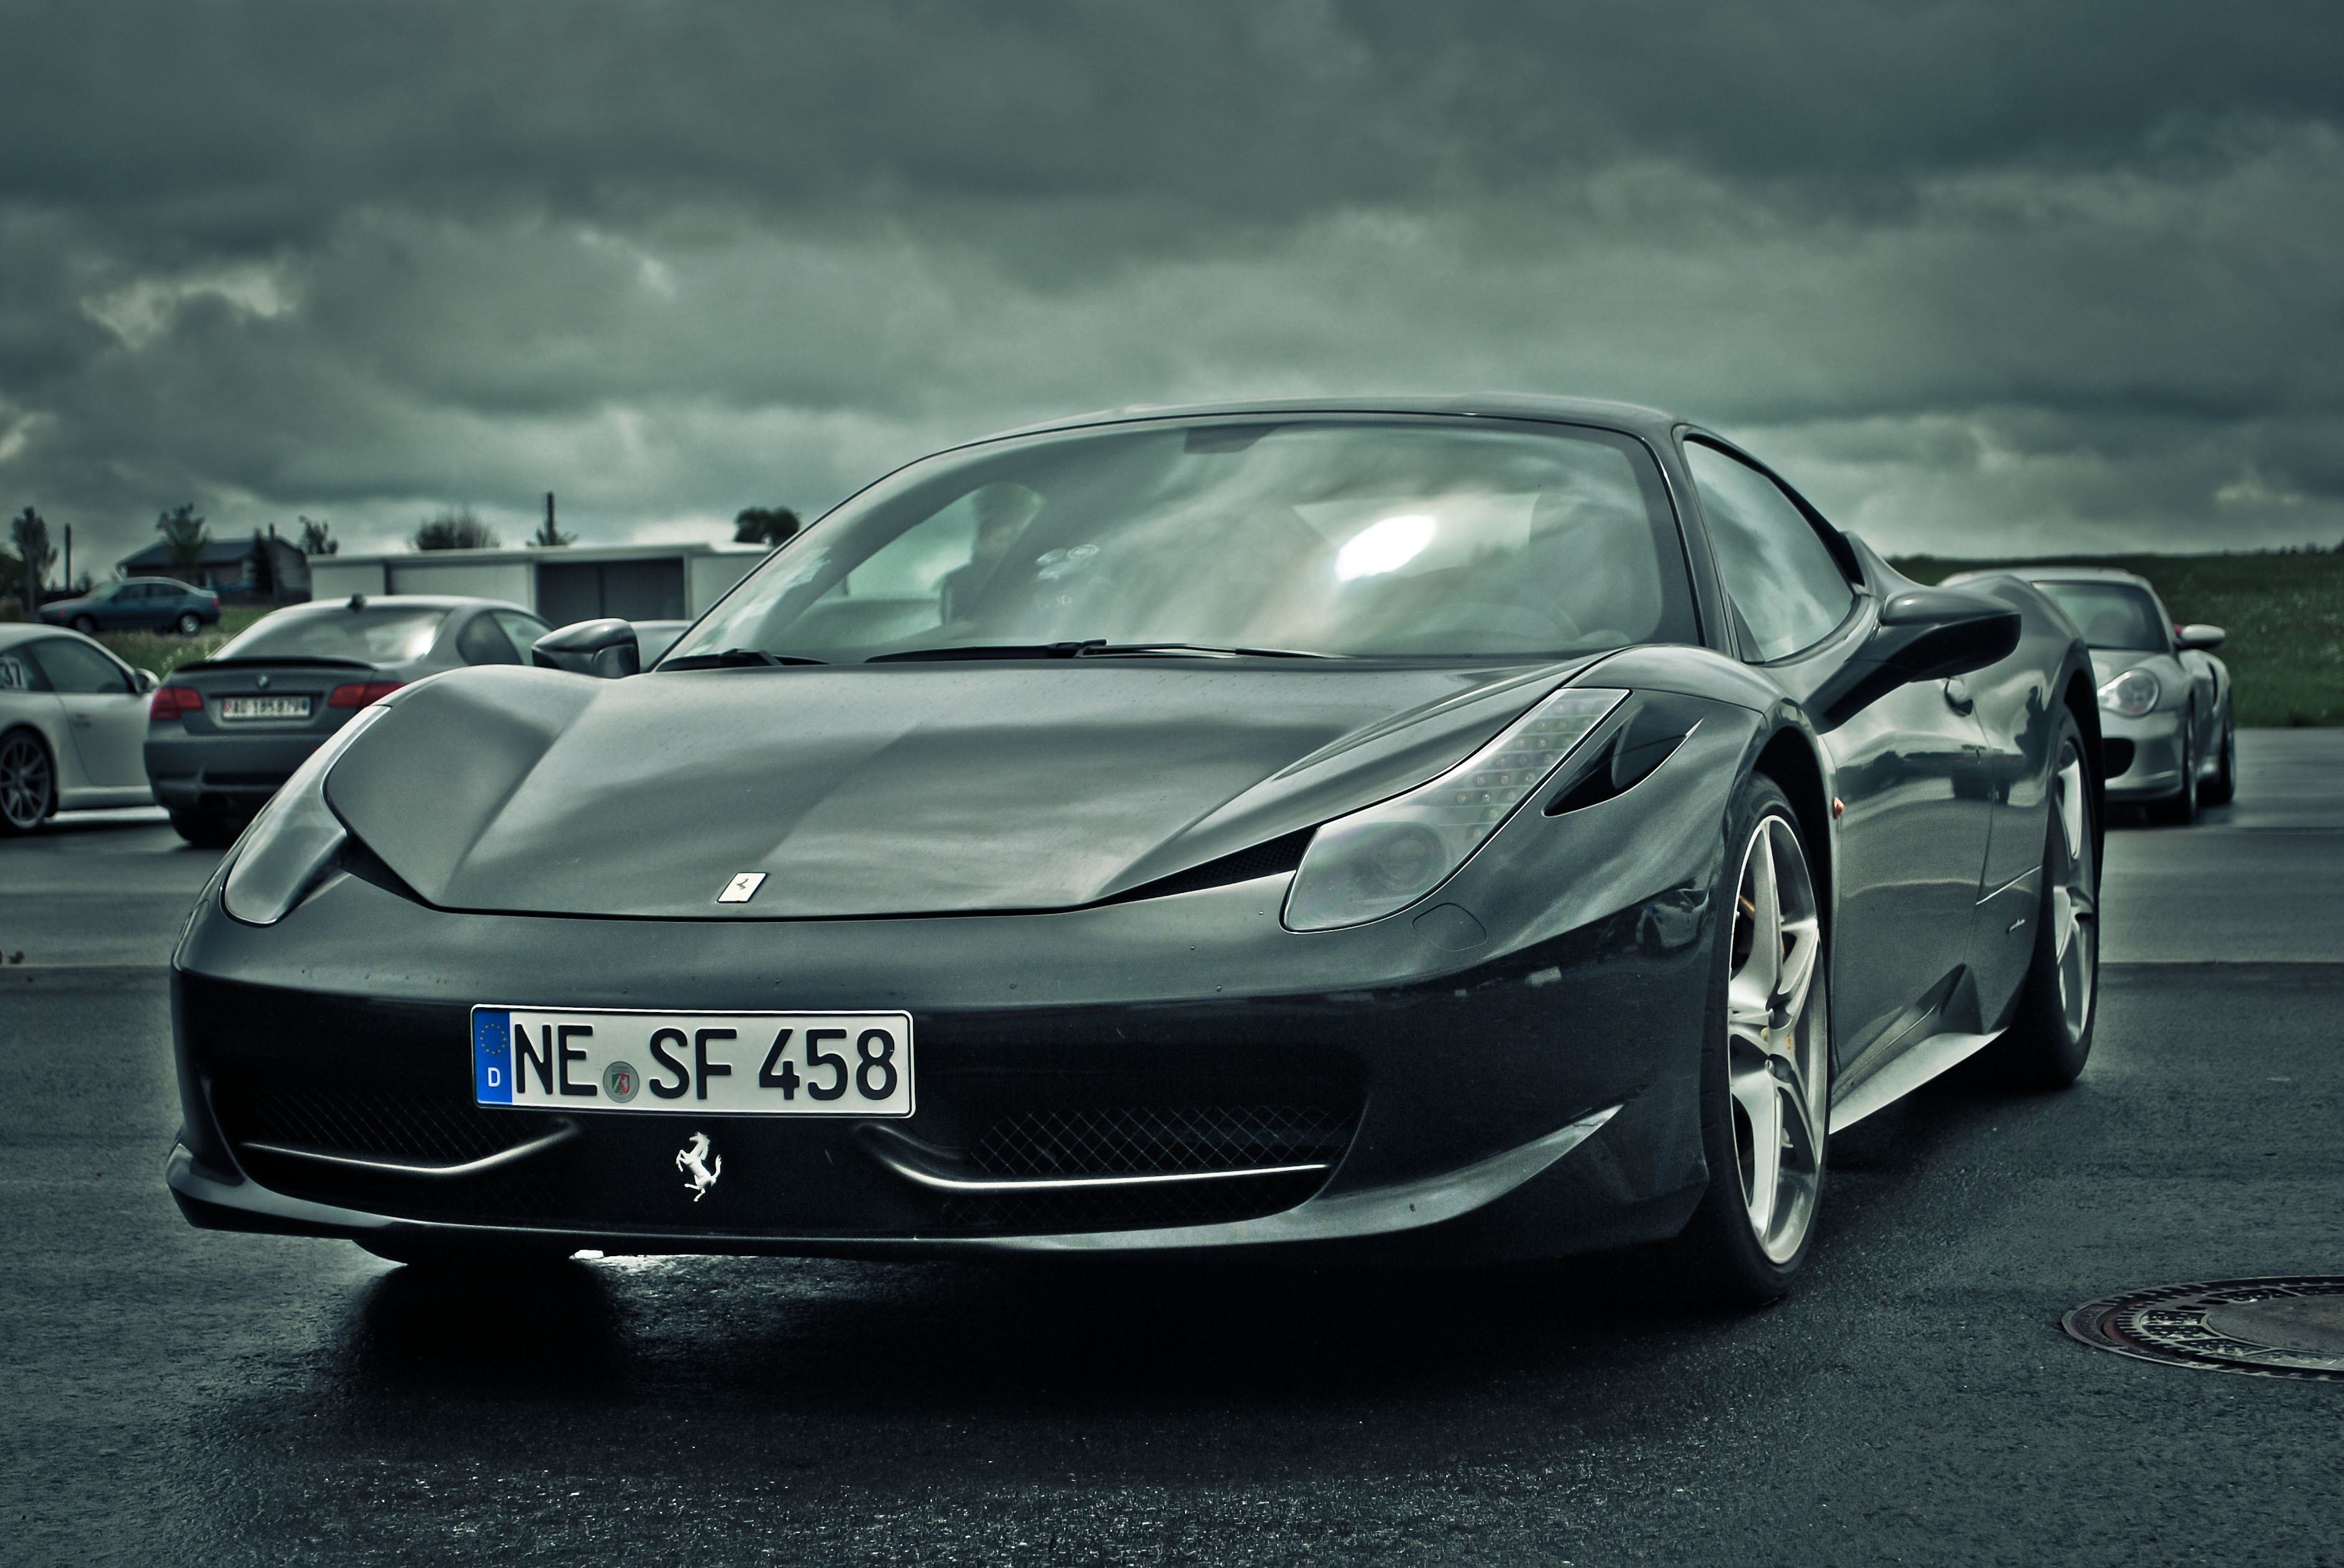 cars vehicles ferrari 458 HD Wallpaper